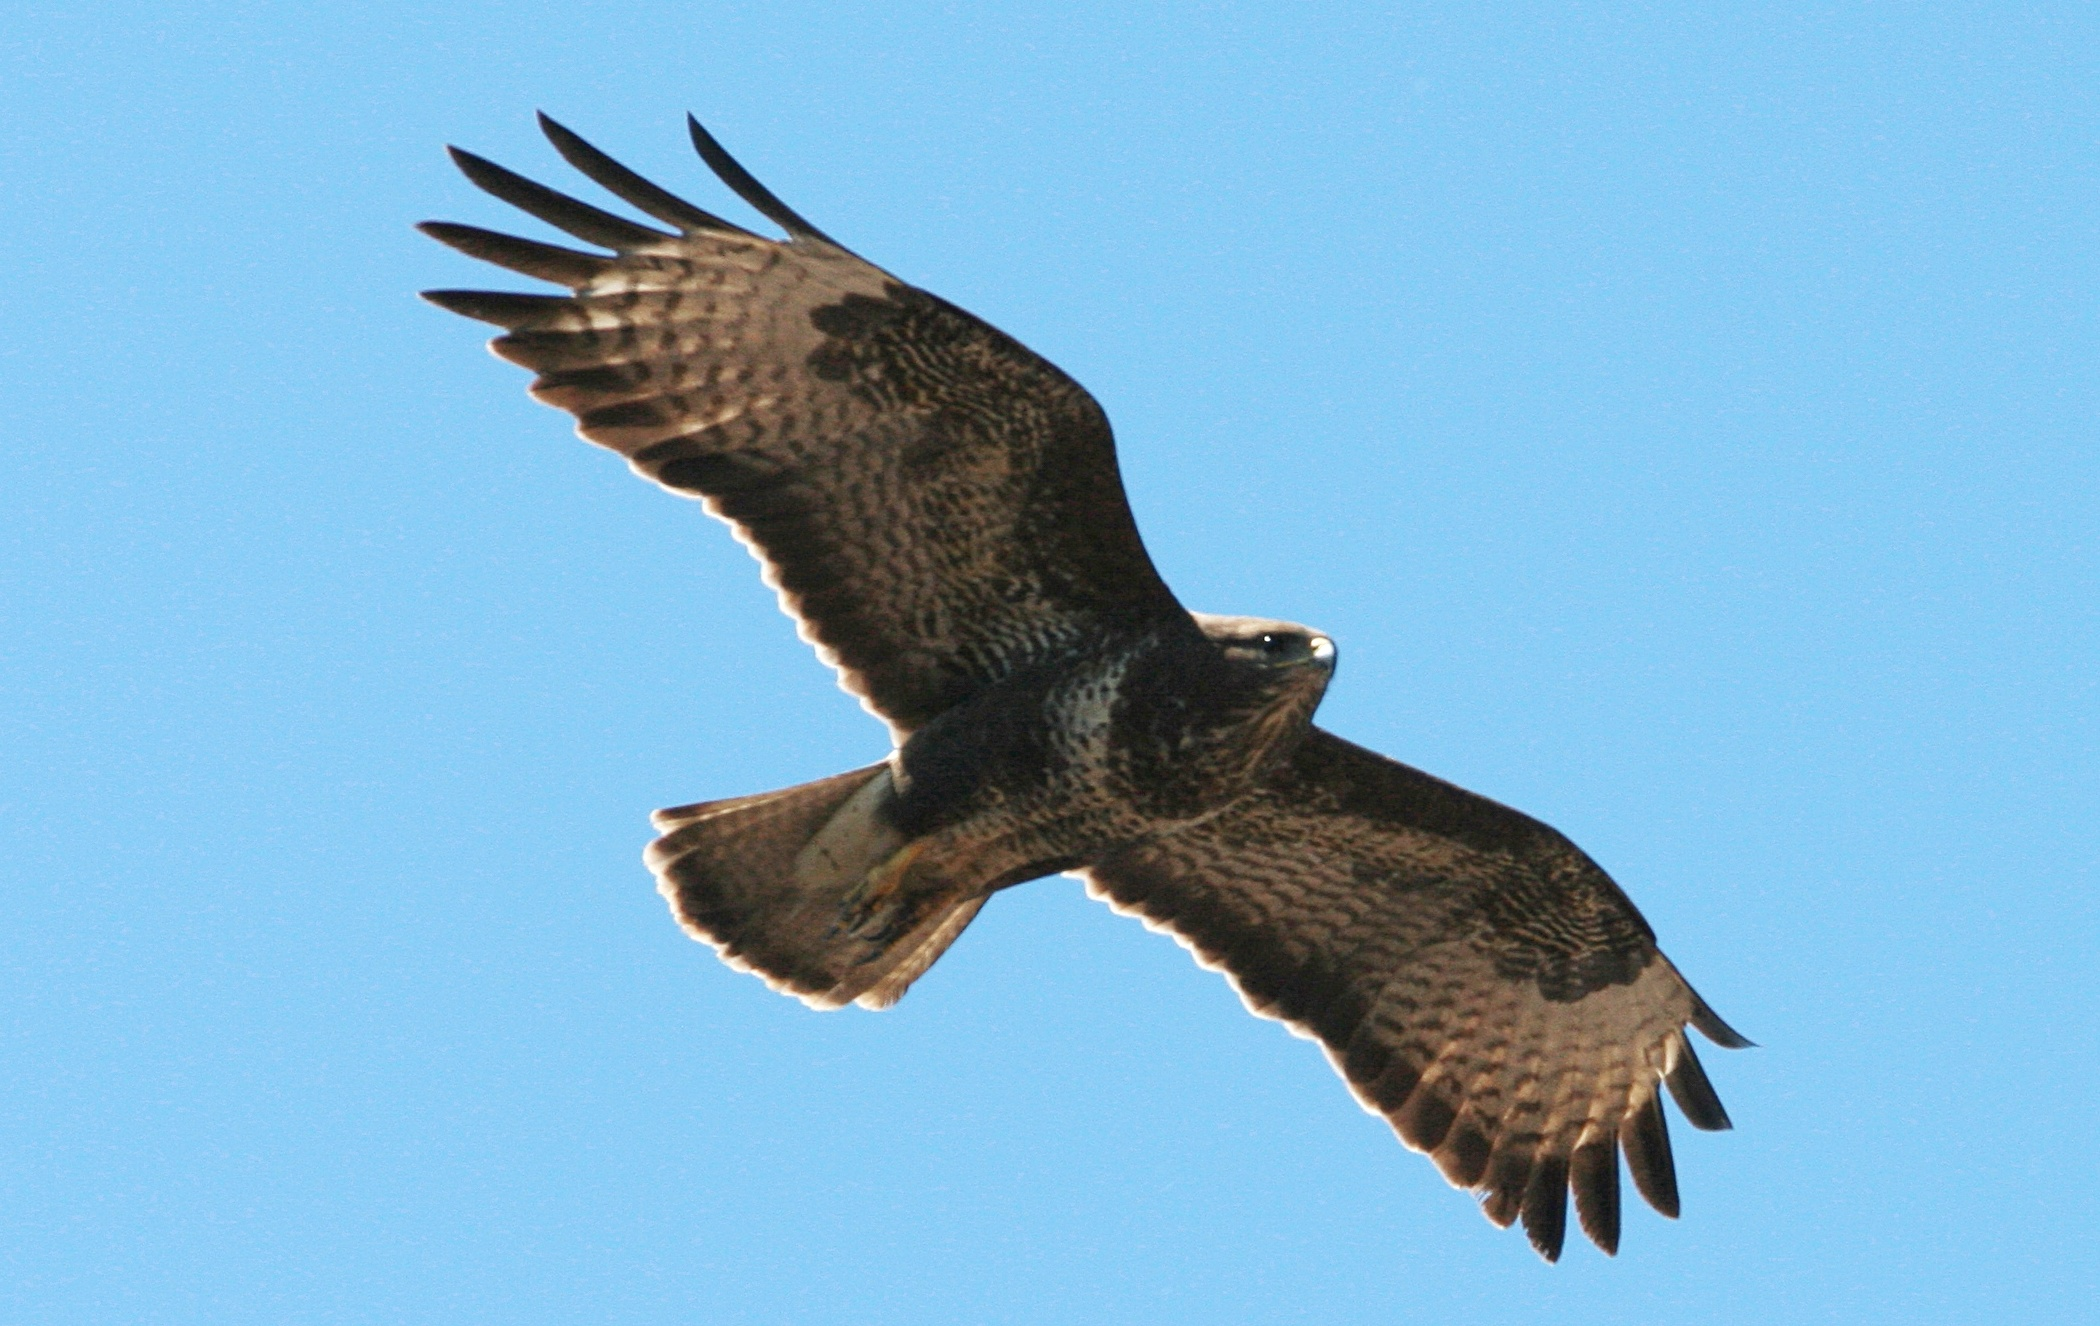 pictures of buzzards in flight